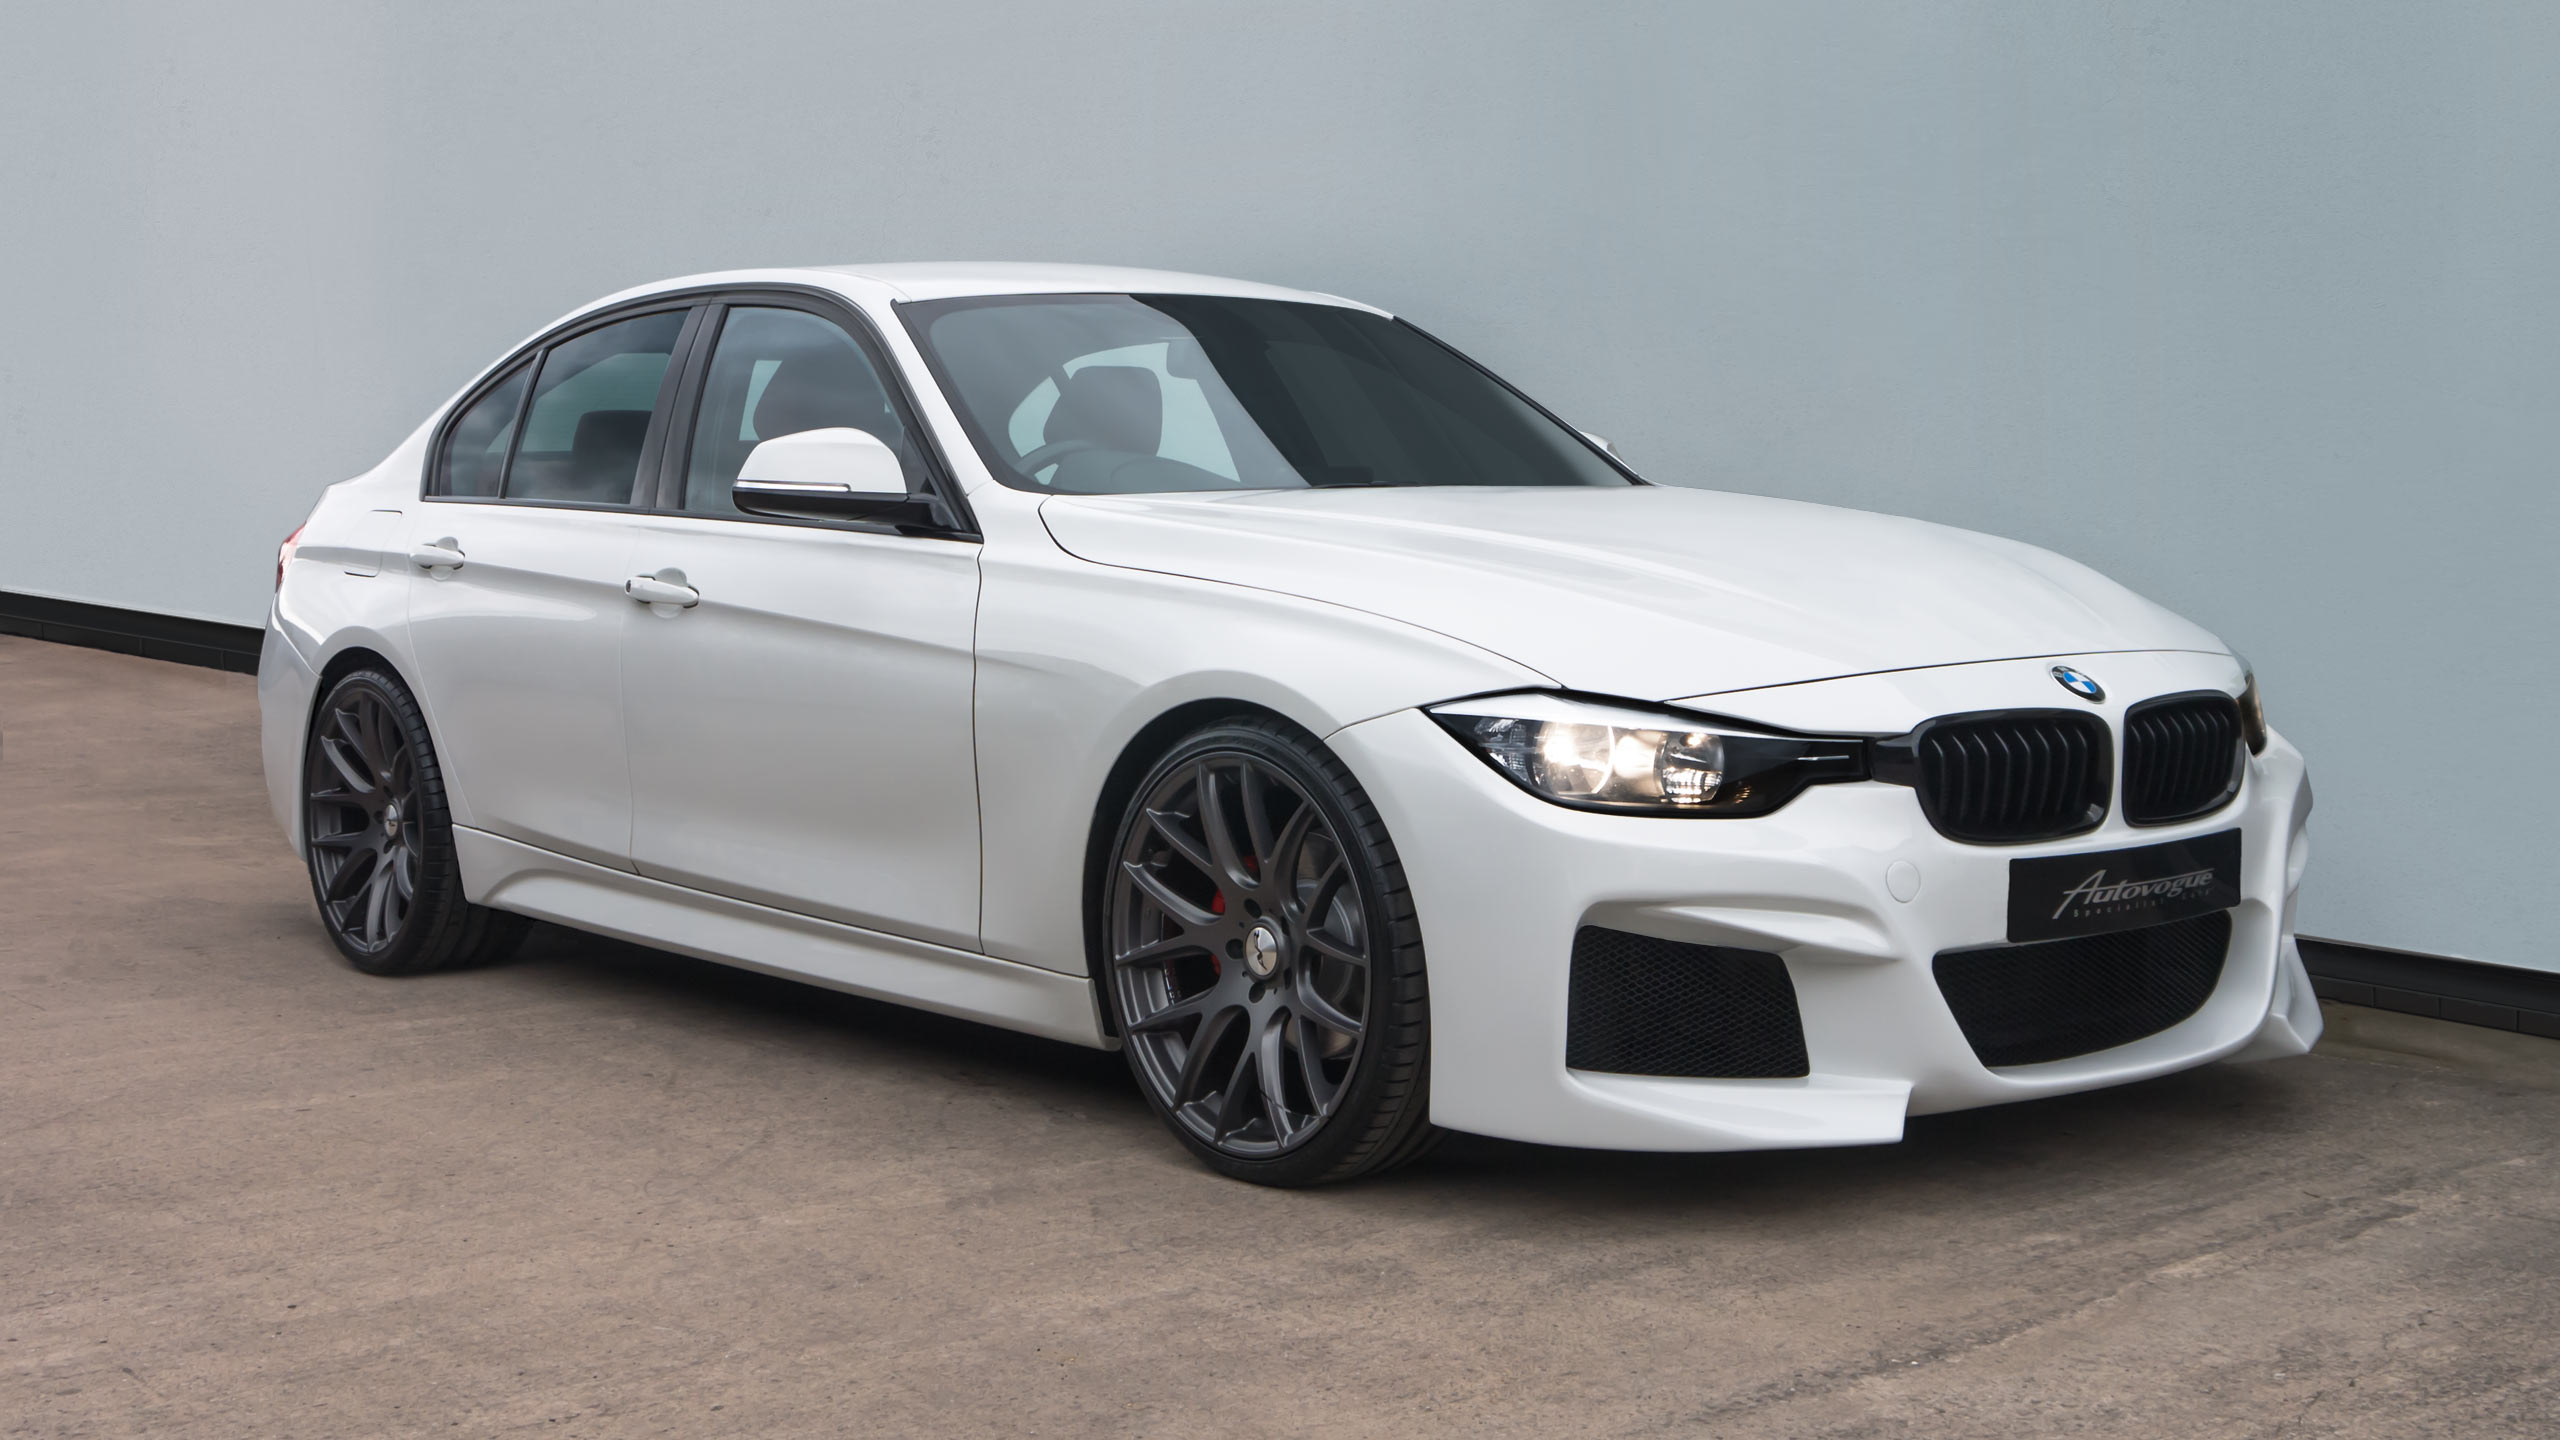 bmw 3 series f30 saloon autovogue bespoke. Black Bedroom Furniture Sets. Home Design Ideas